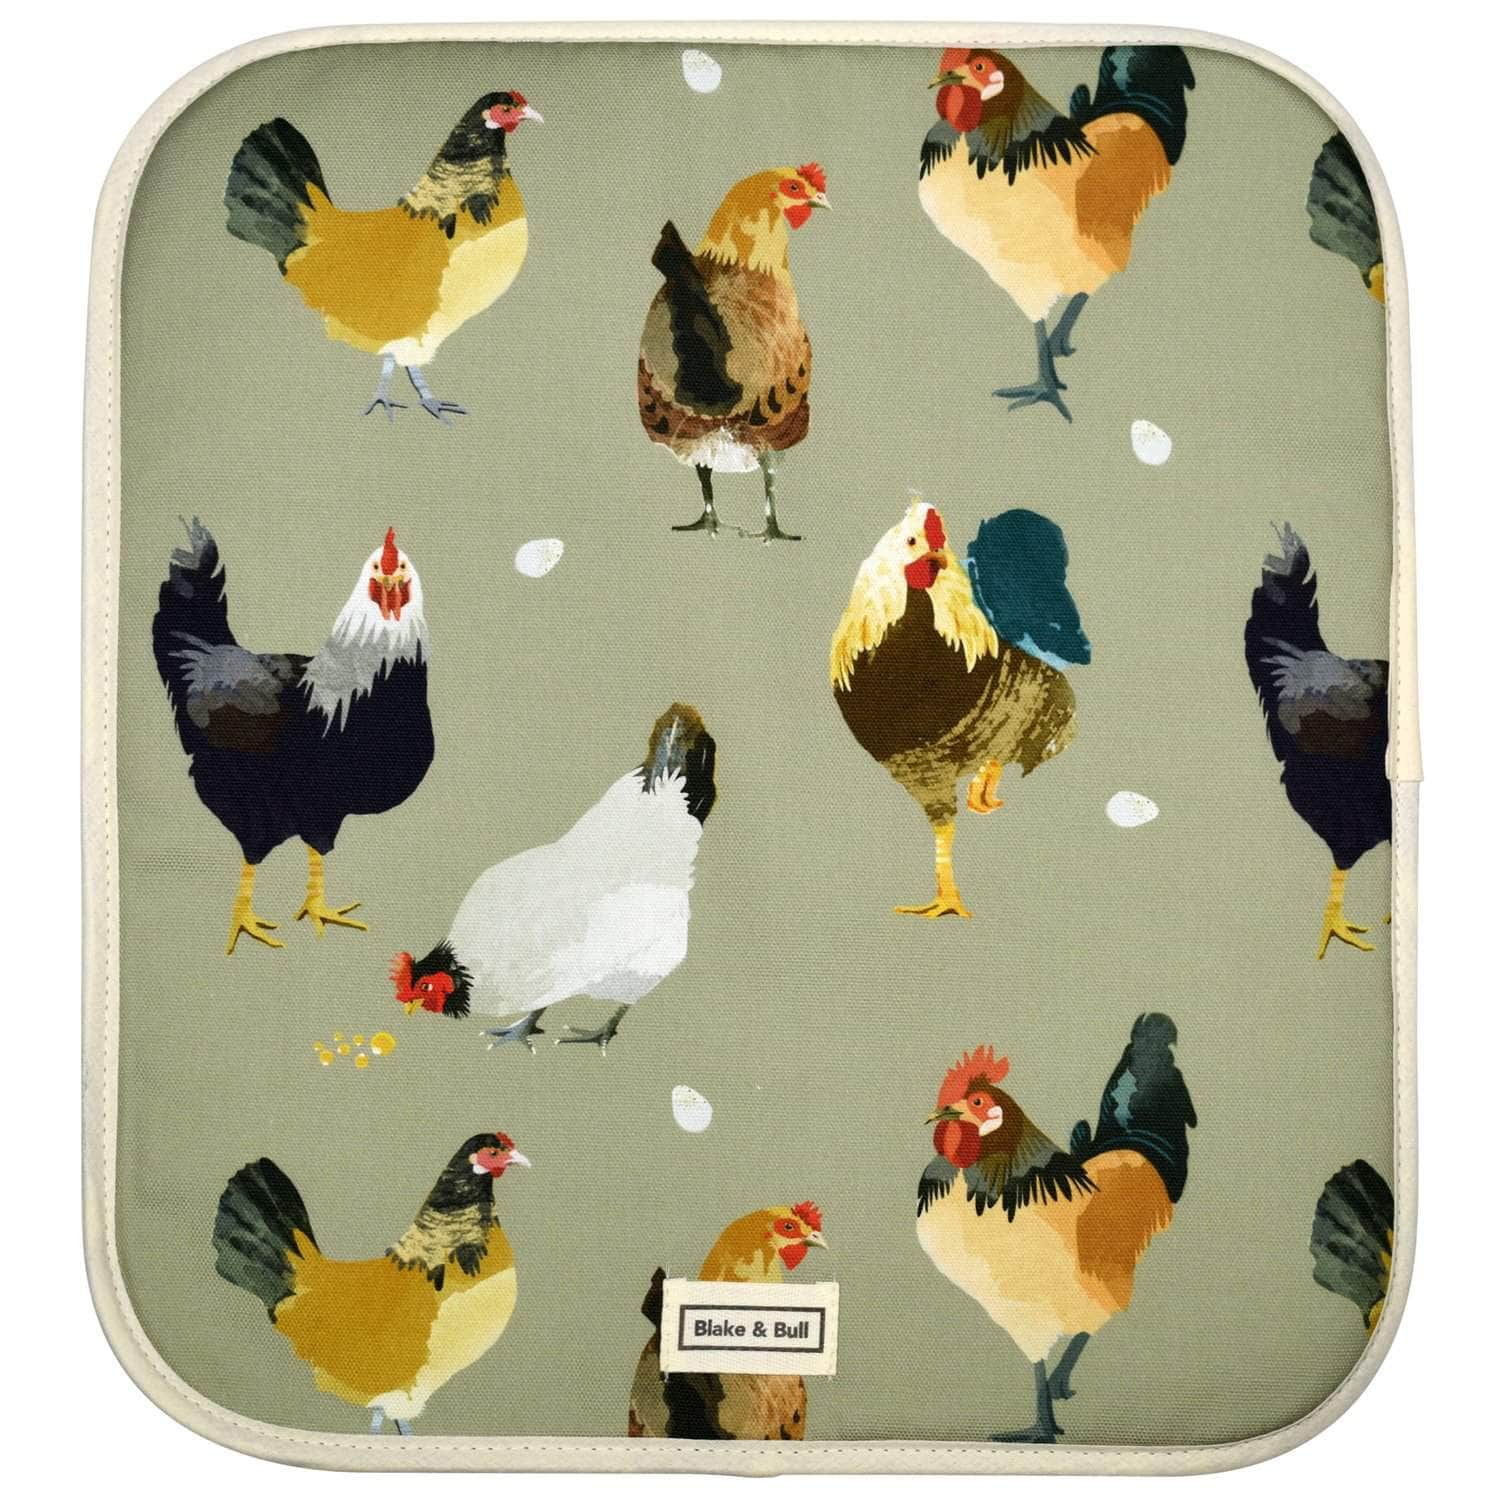 Warming plate cover for use with Aga range cookers - 'The Chickens'